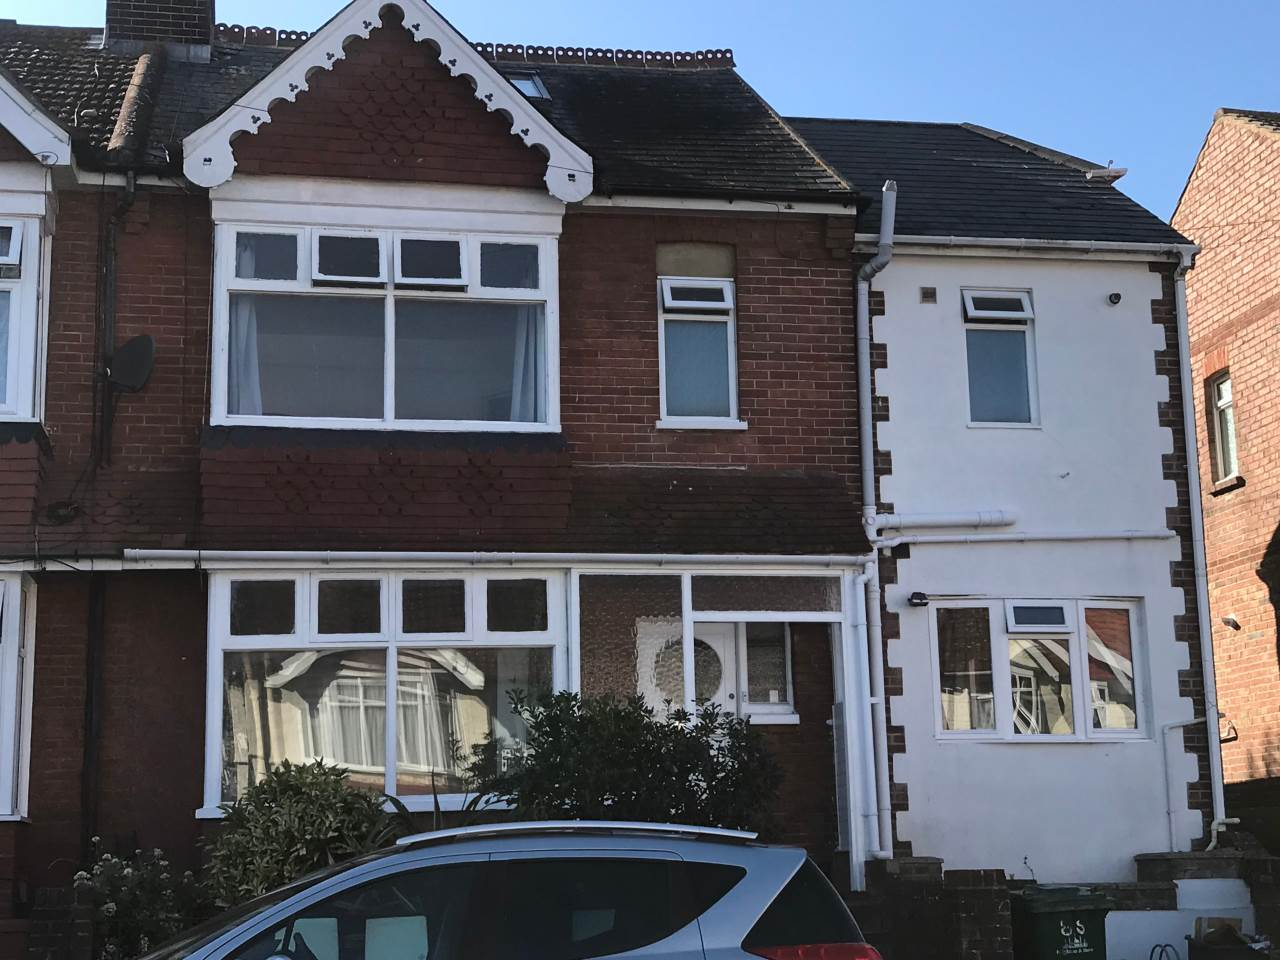 8 bed house to rent in Hollingdean Terrace, Brighton - Property Image 1